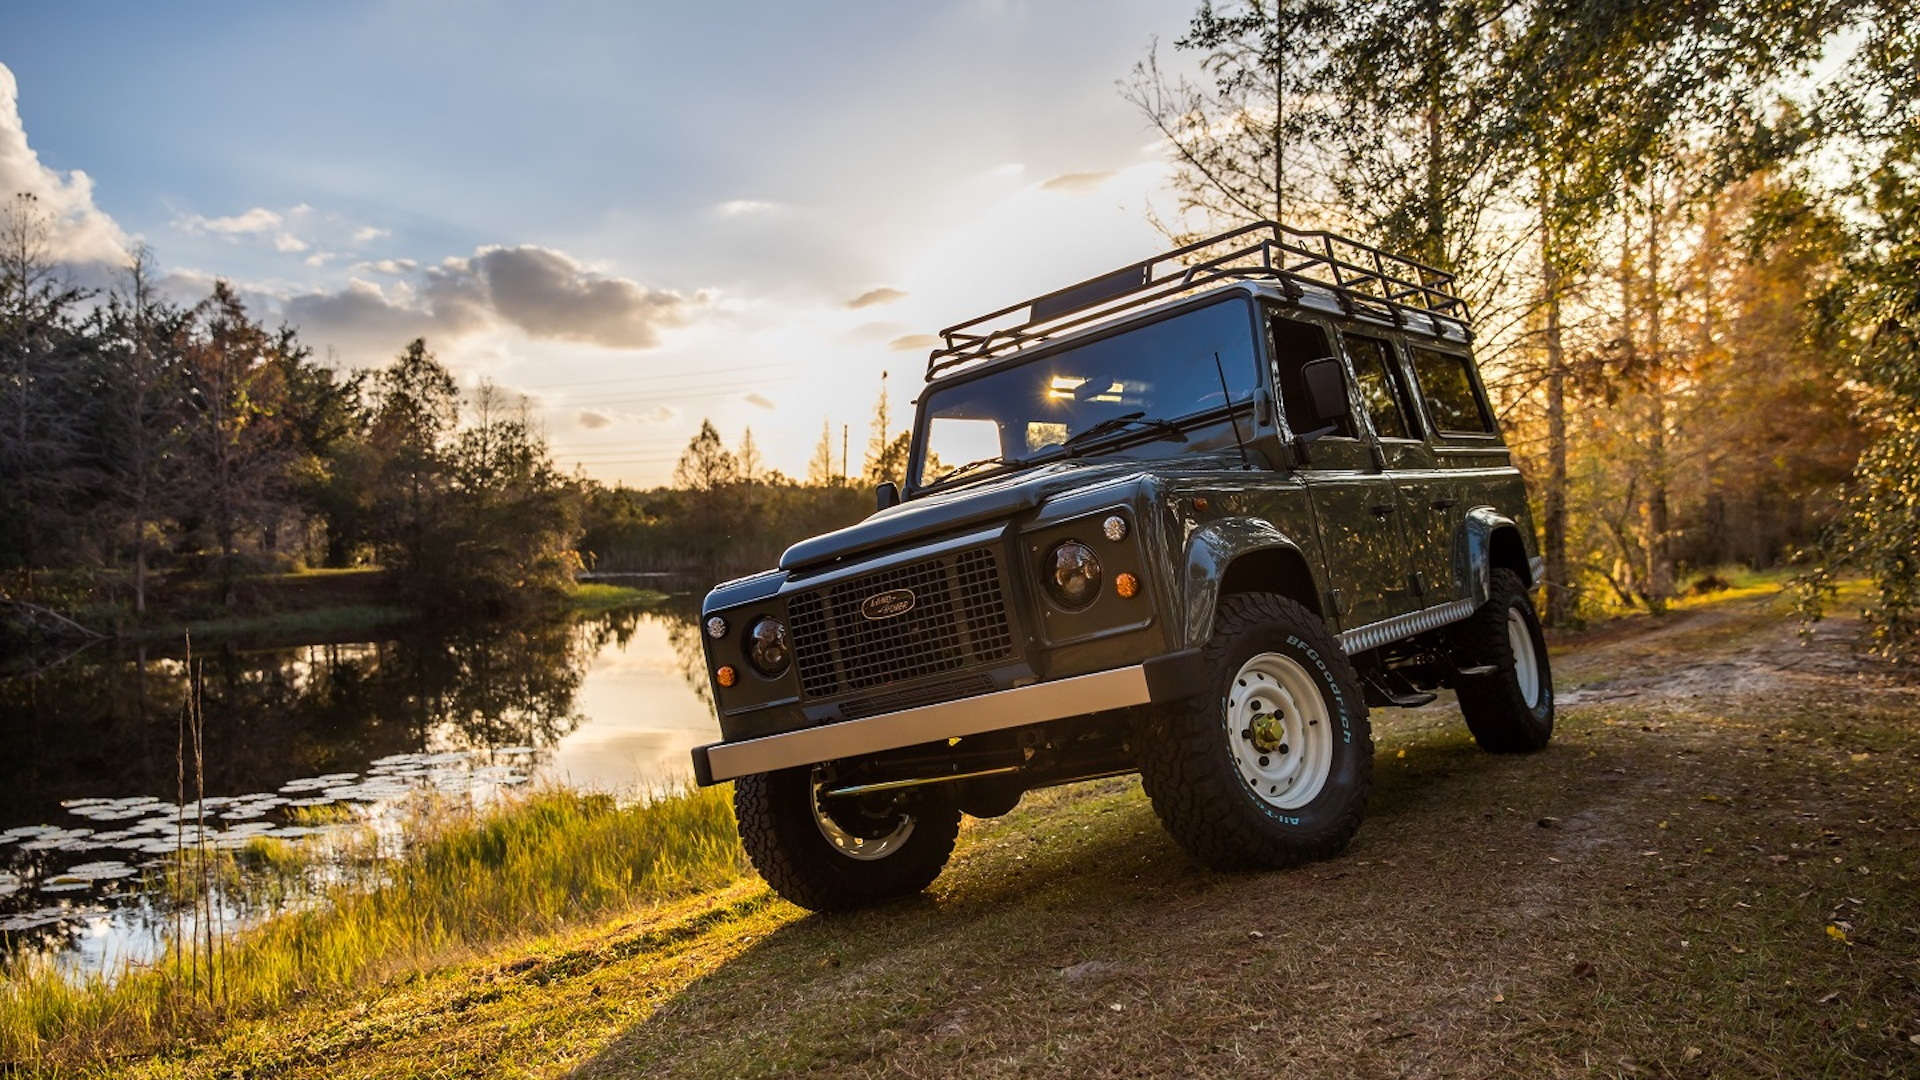 Project Tuki by East Coast Defender